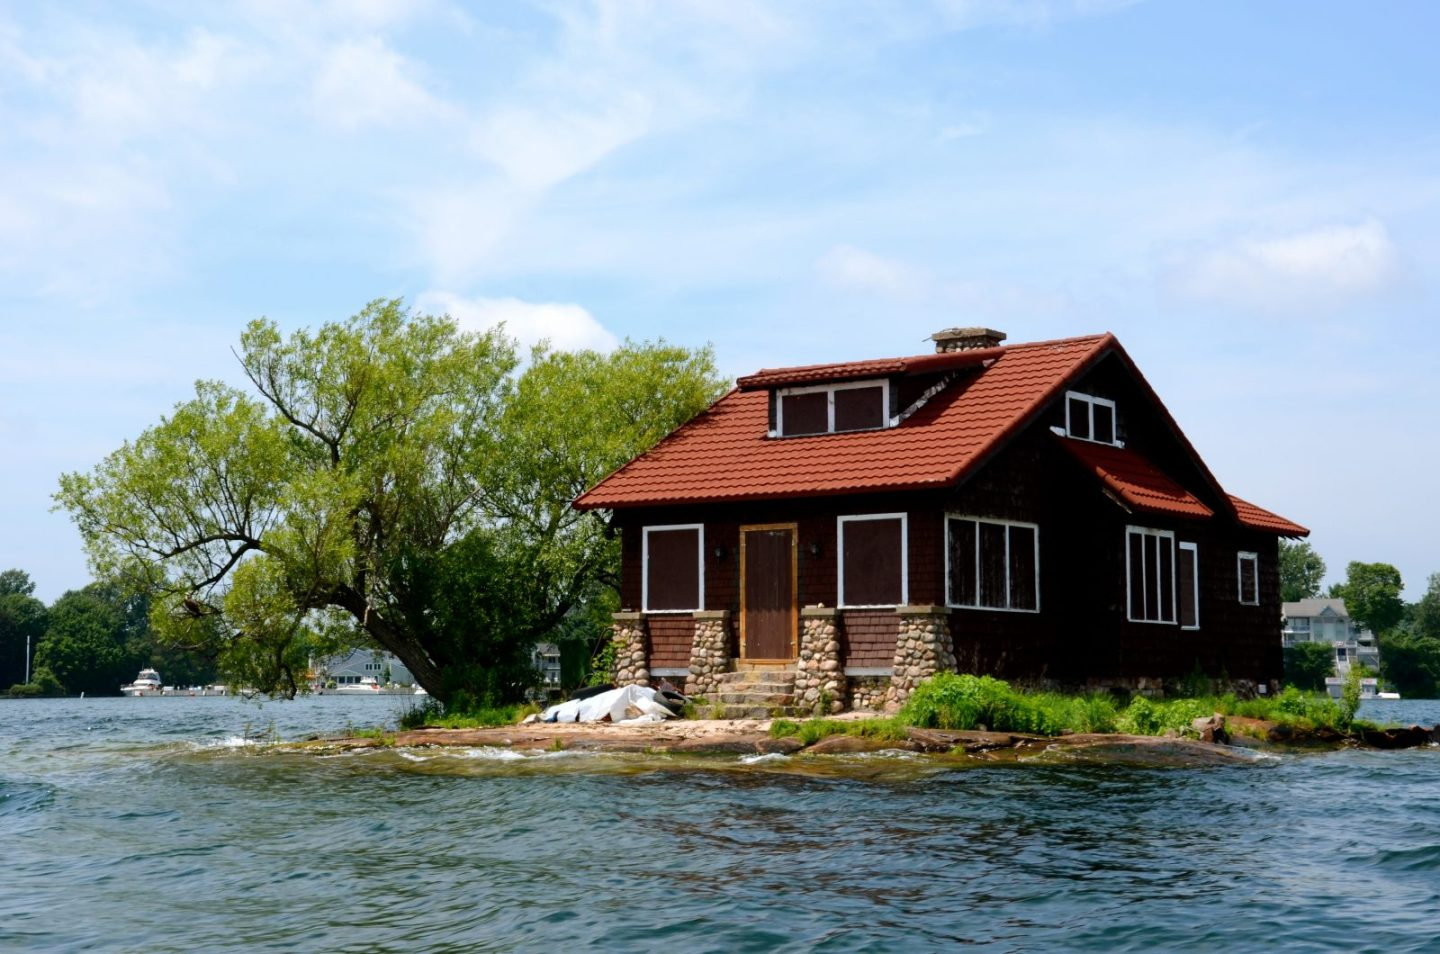 Thousand Islands in upstate New York are an adventurous place to explore and go boating.